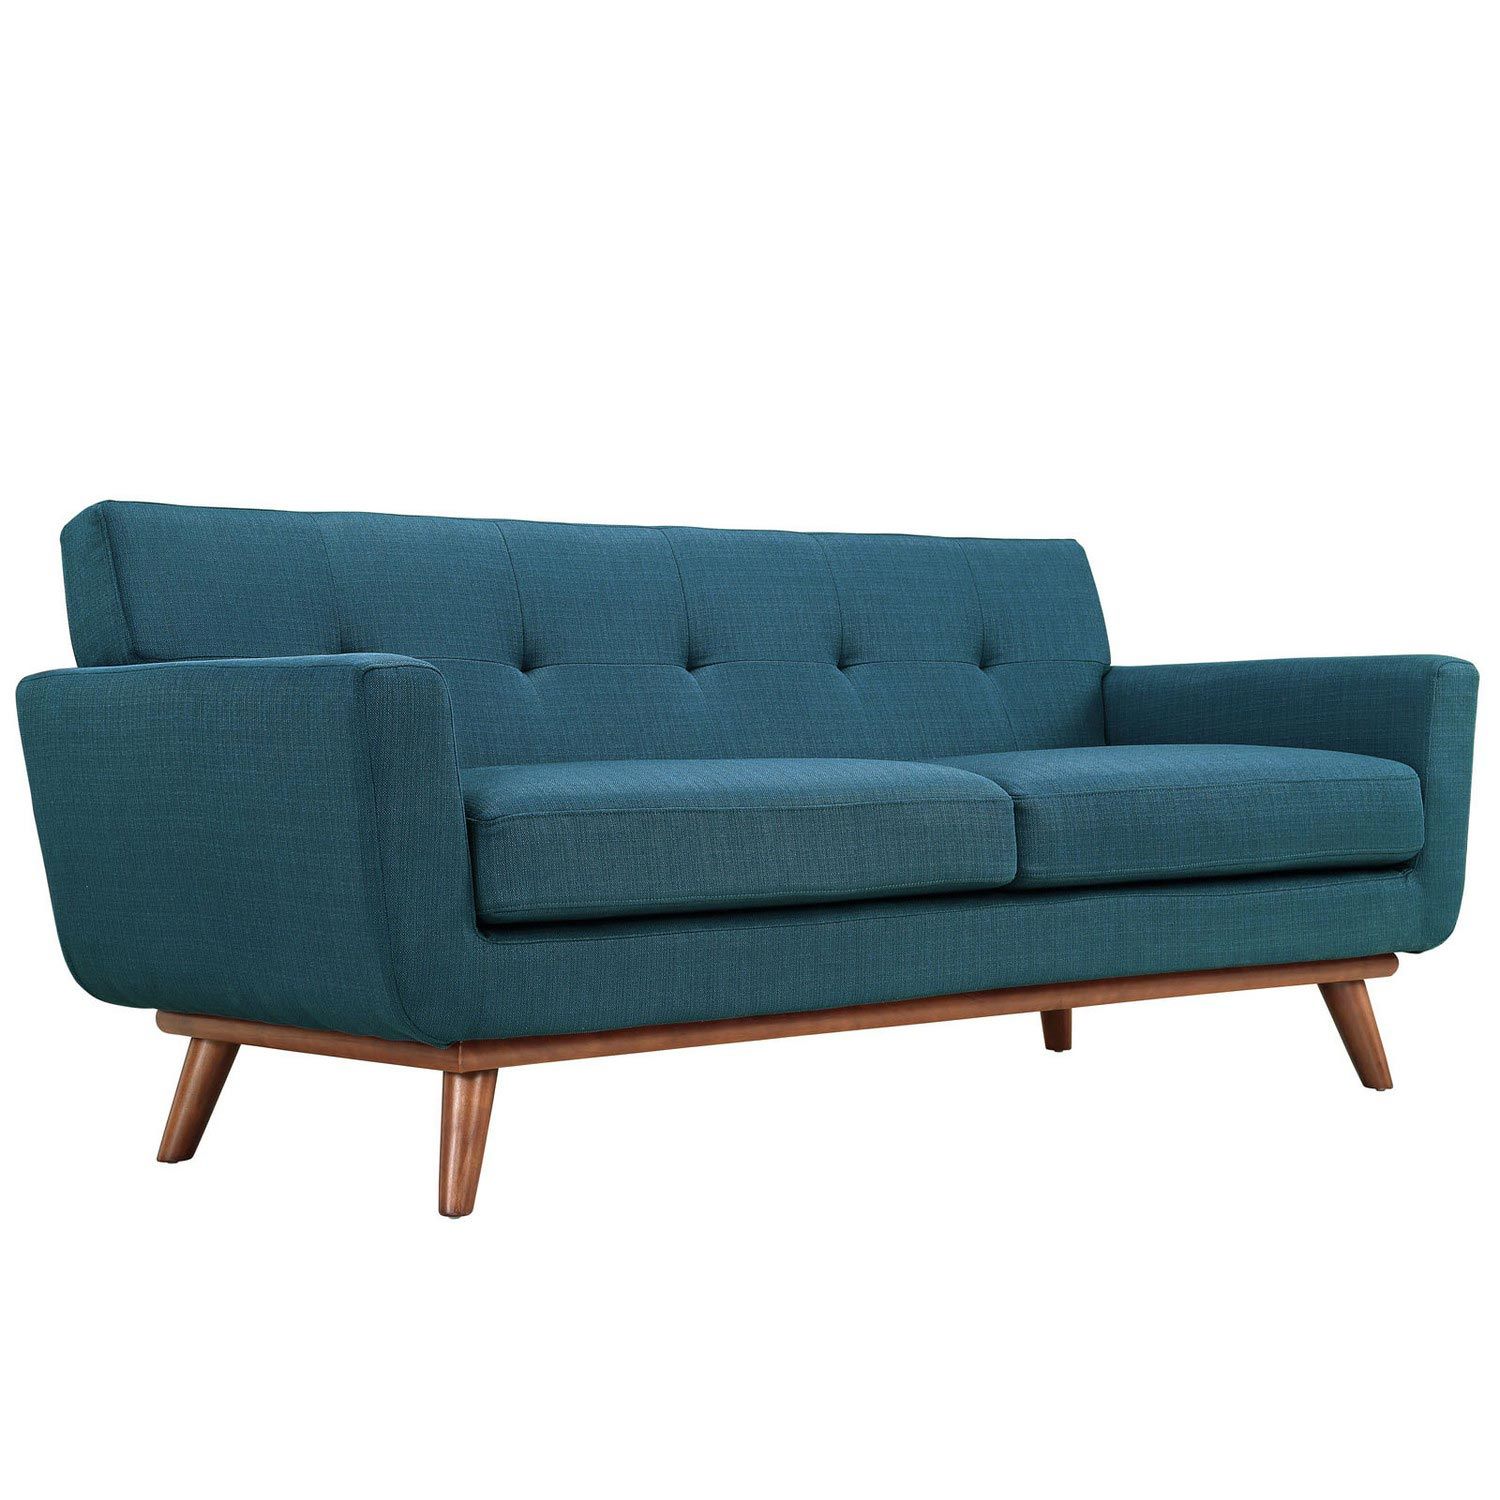 Modway Engage Armchair and Loveseat Set of 2 - Azure